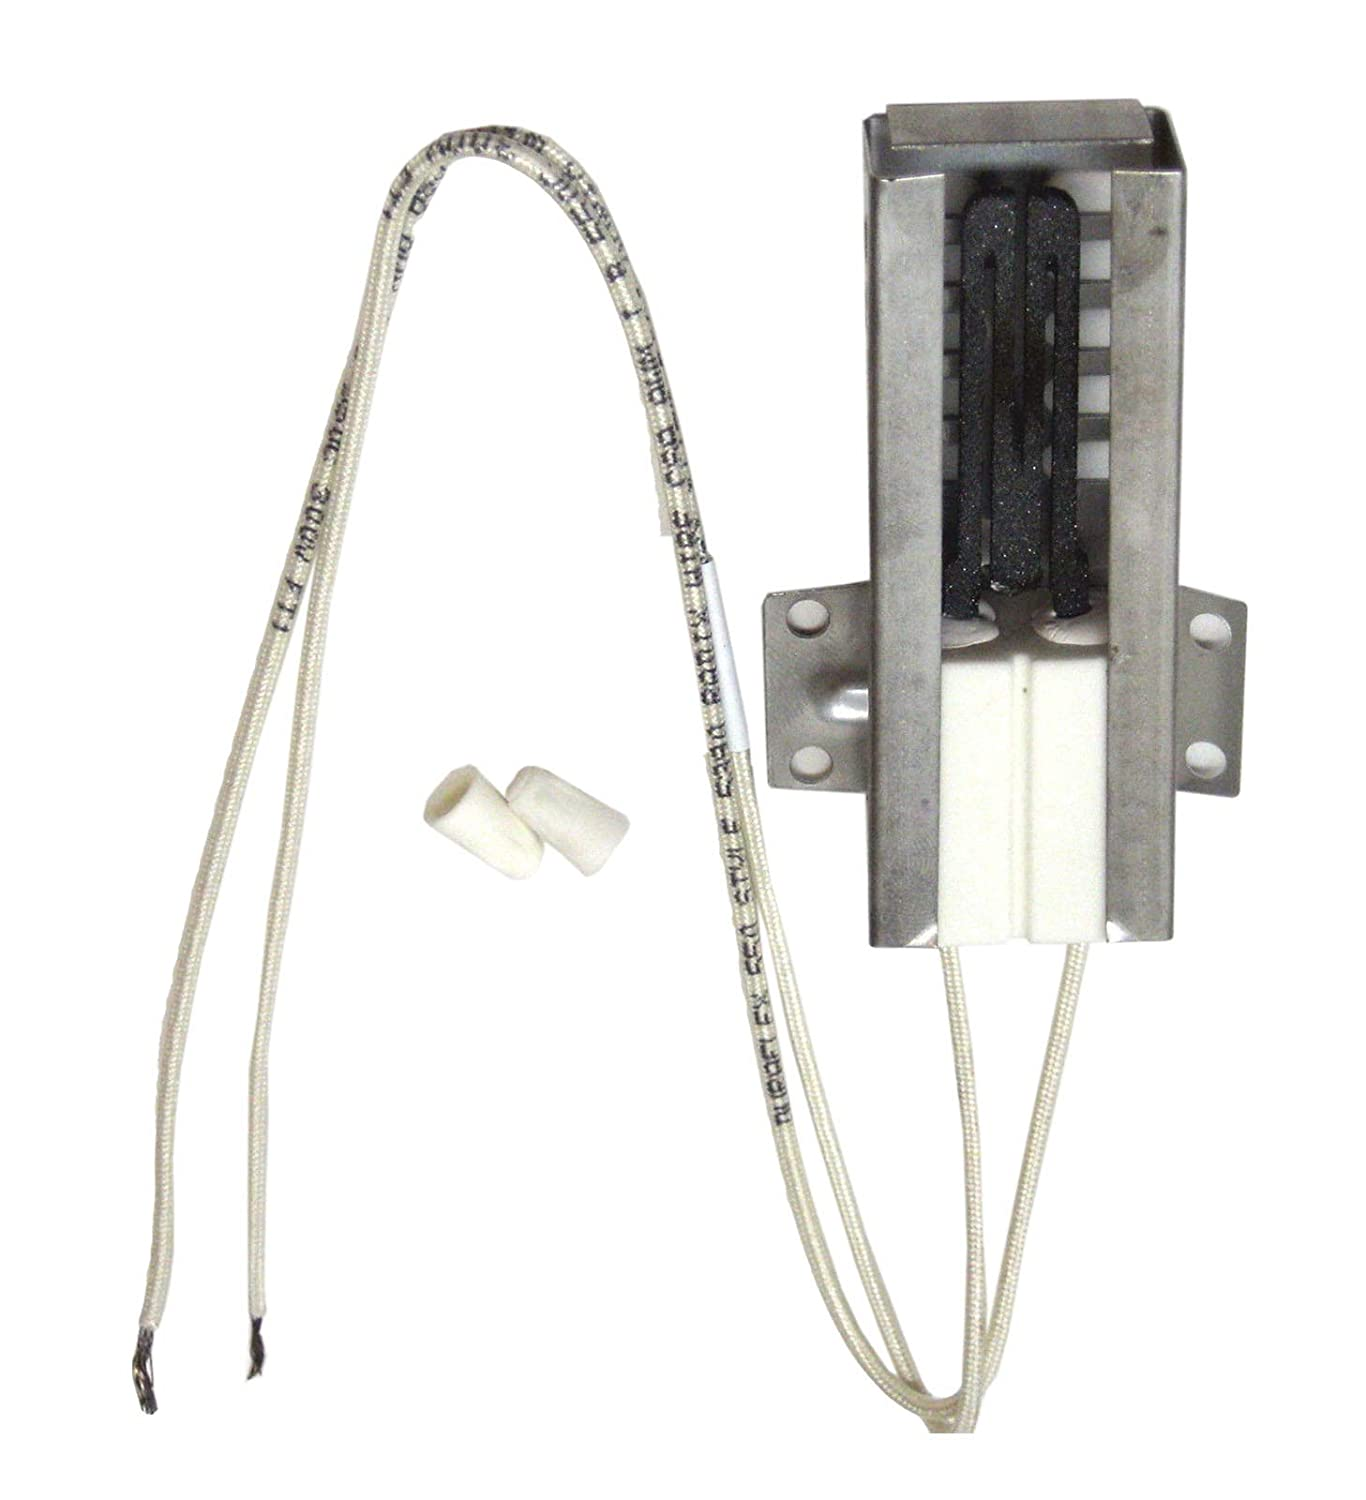 31939701 - ClimaTek Direct Replacement for Whirlpool Gas Range Oven Stove Ignitor Igniter